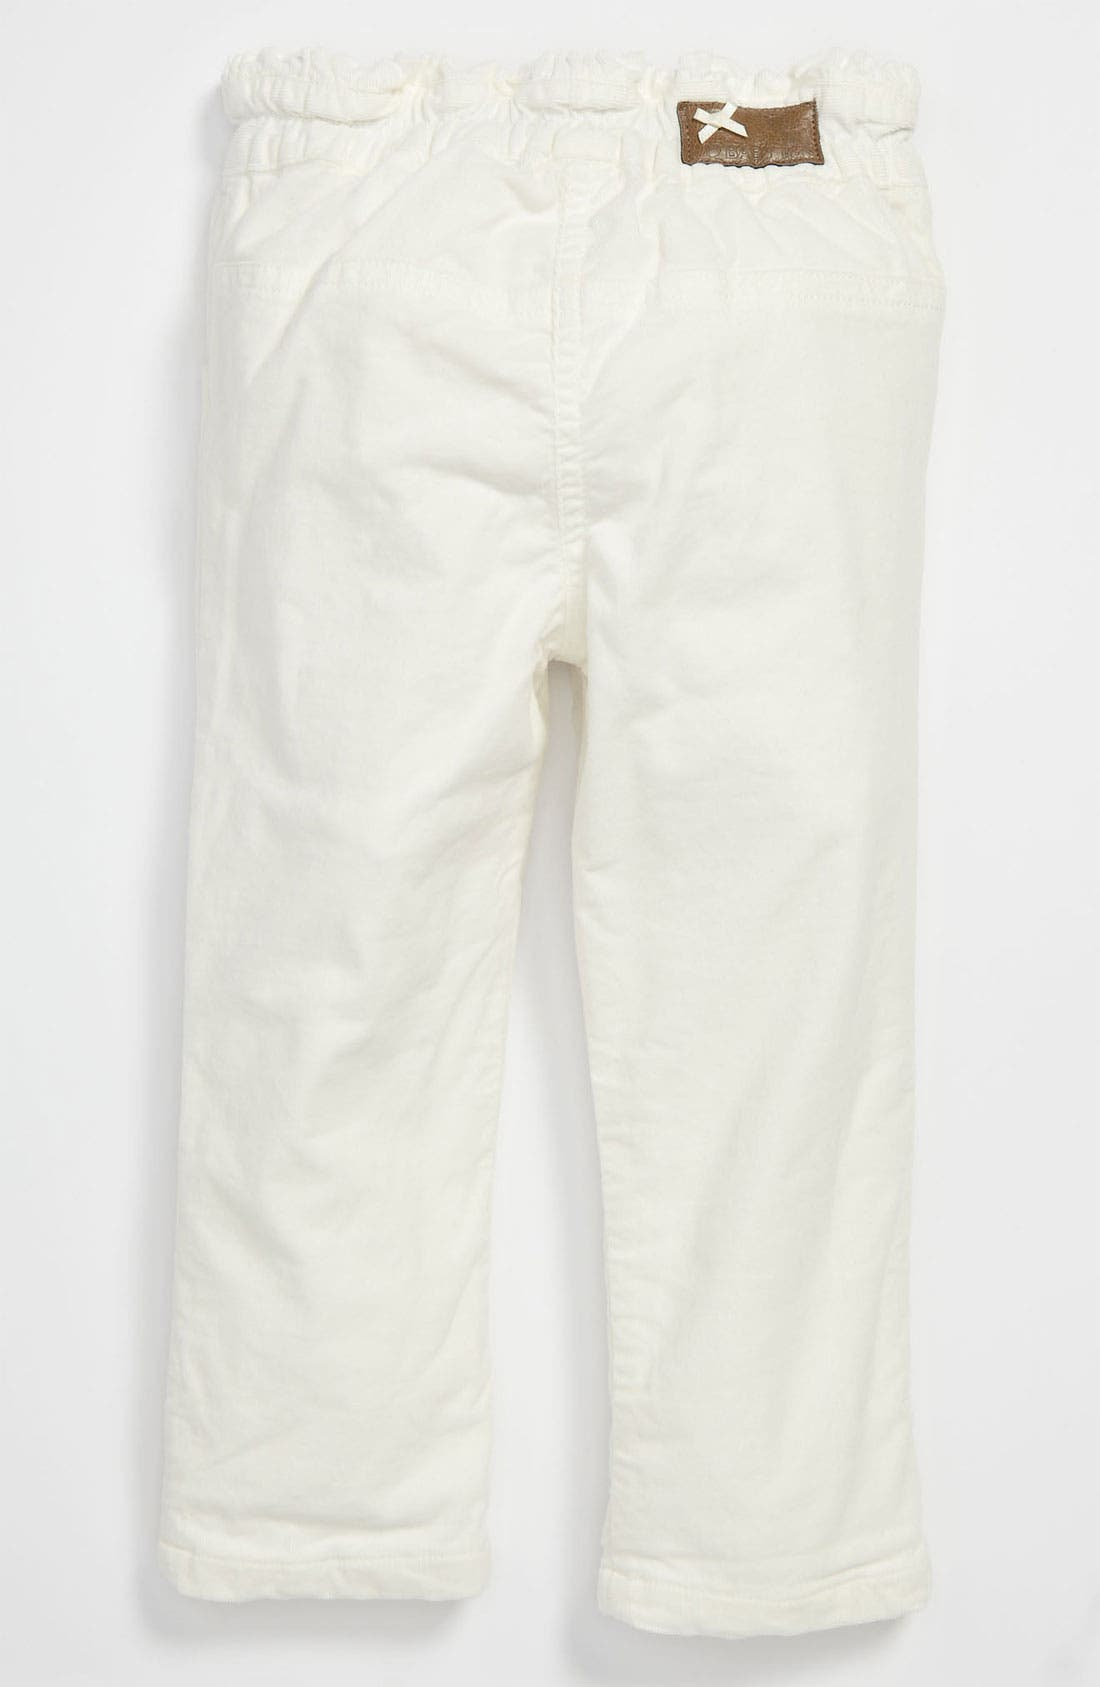 Alternate Image 1 Selected - United Colors of Benetton Kids Corduroy Pants (Infant)